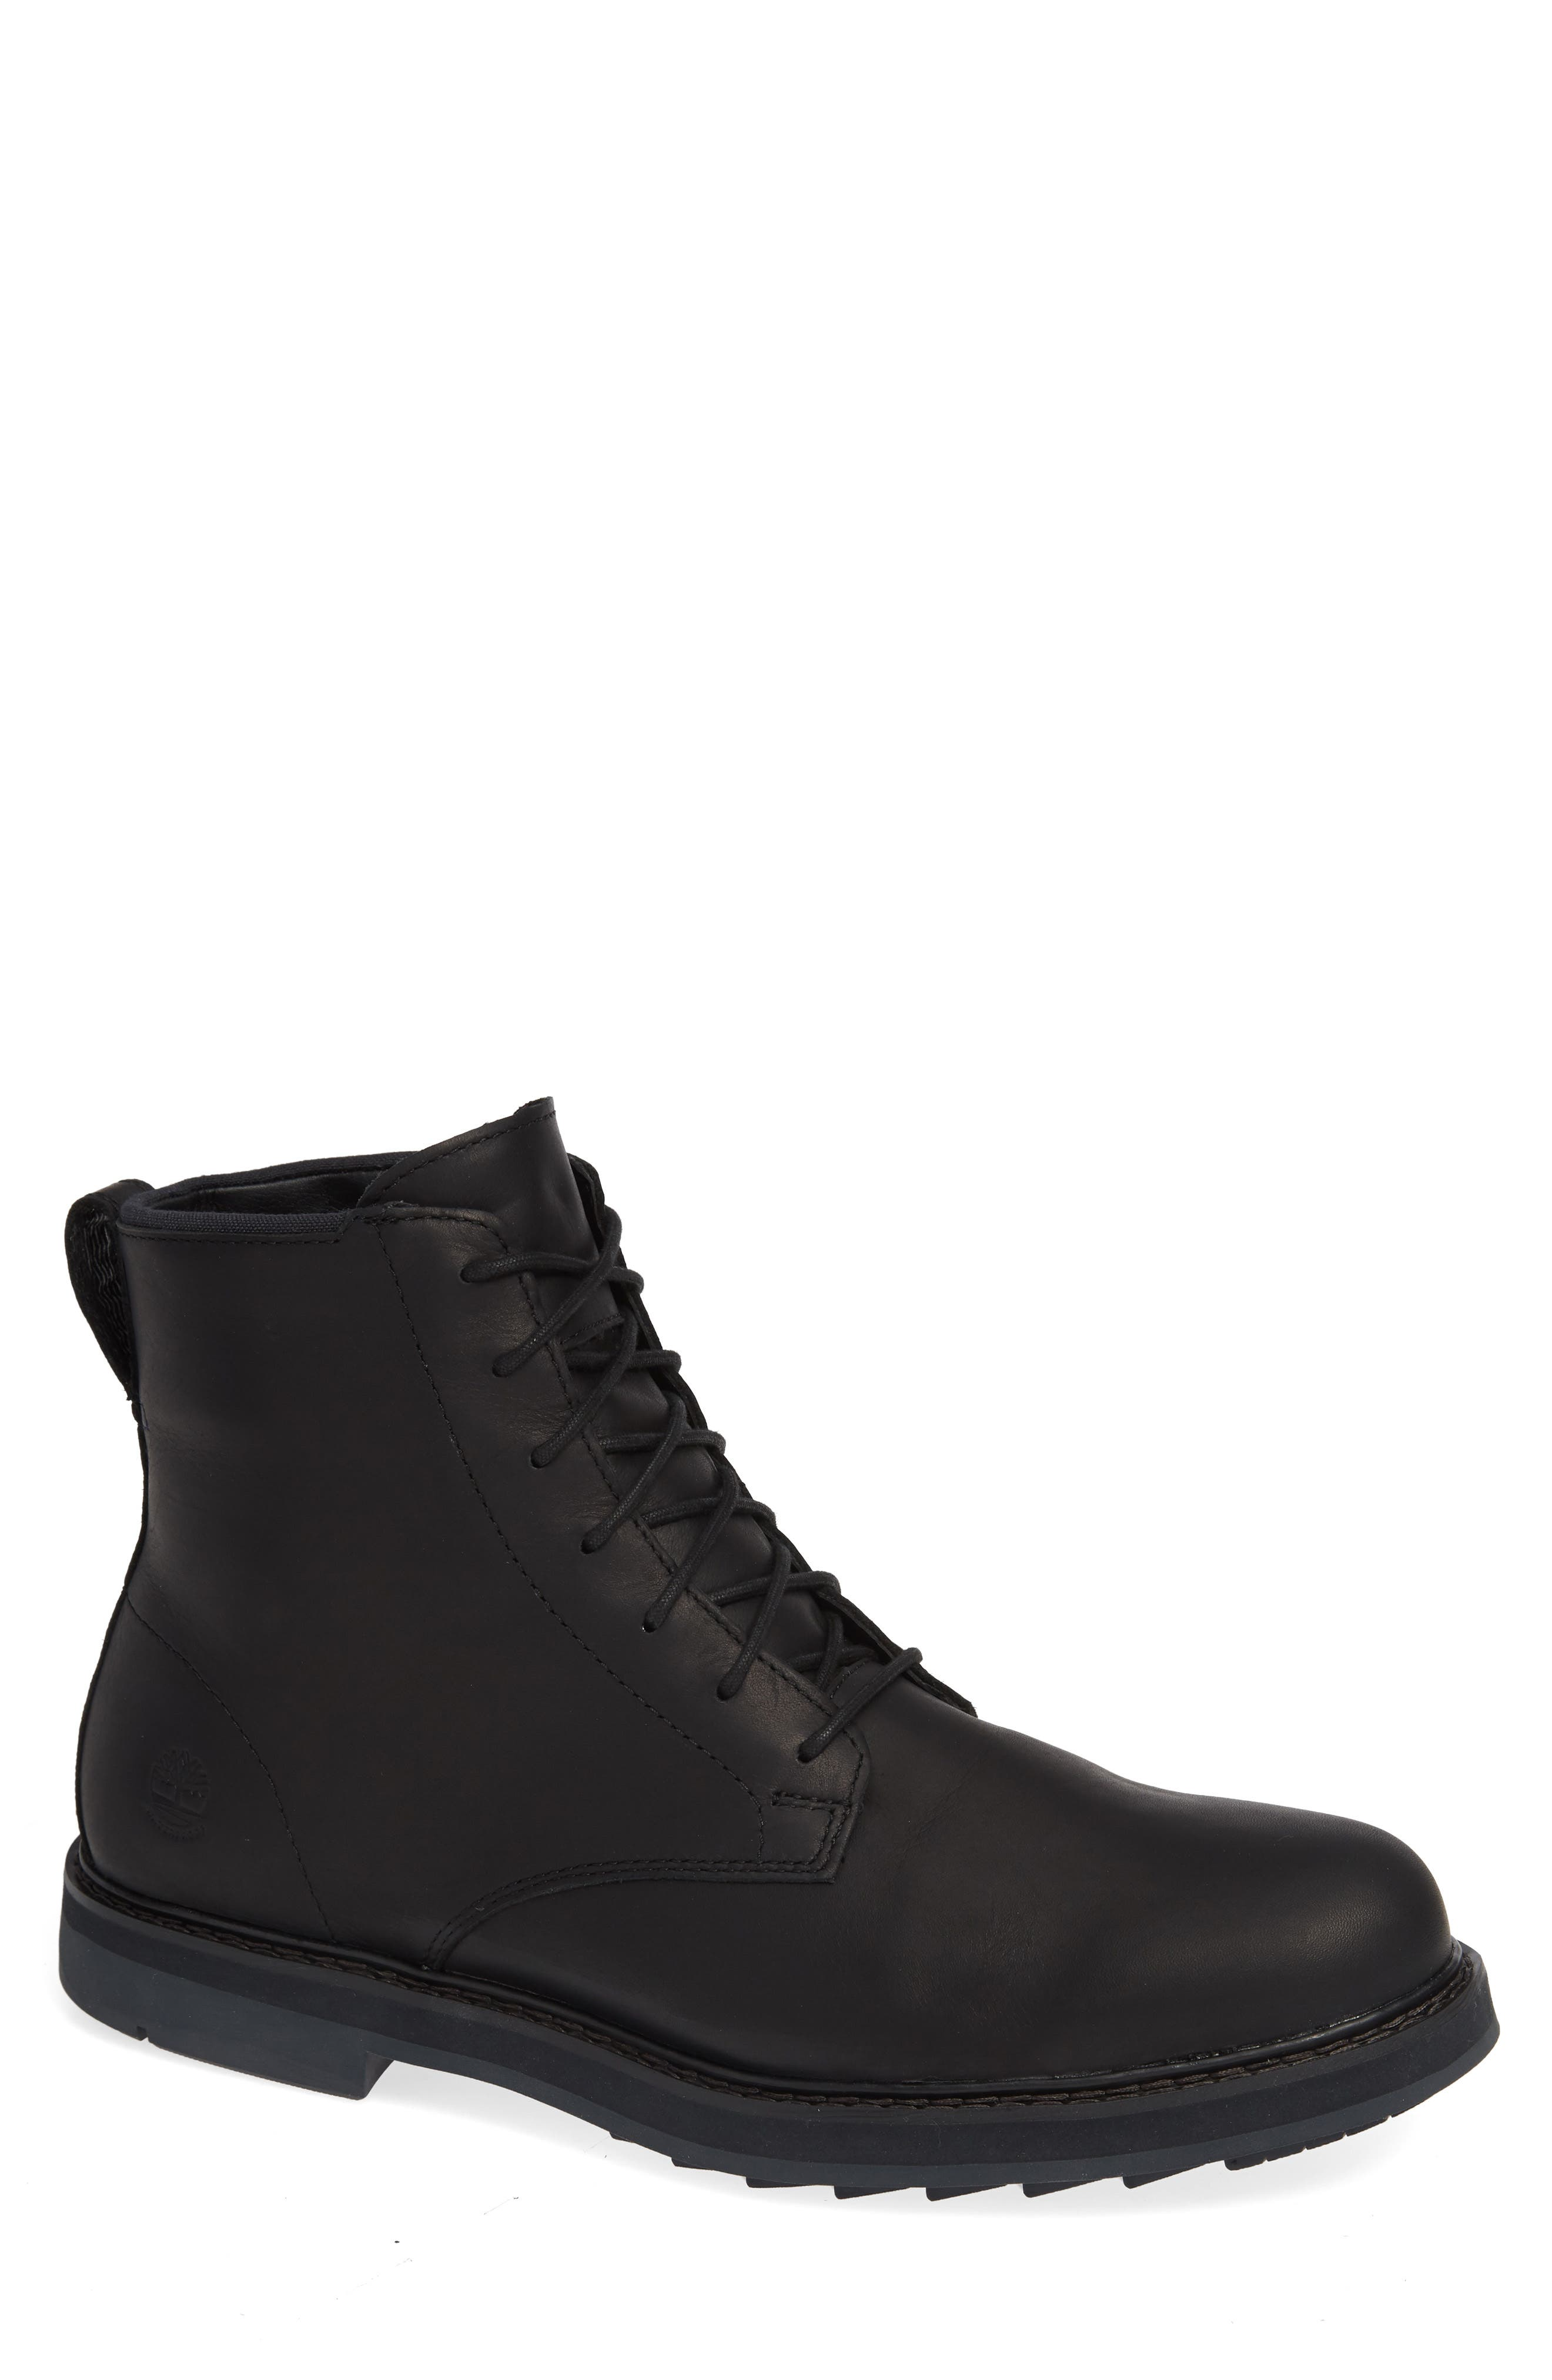 Squall Canyon Waterproof Plain Toe Boot,                         Main,                         color, BLACK LEATHER